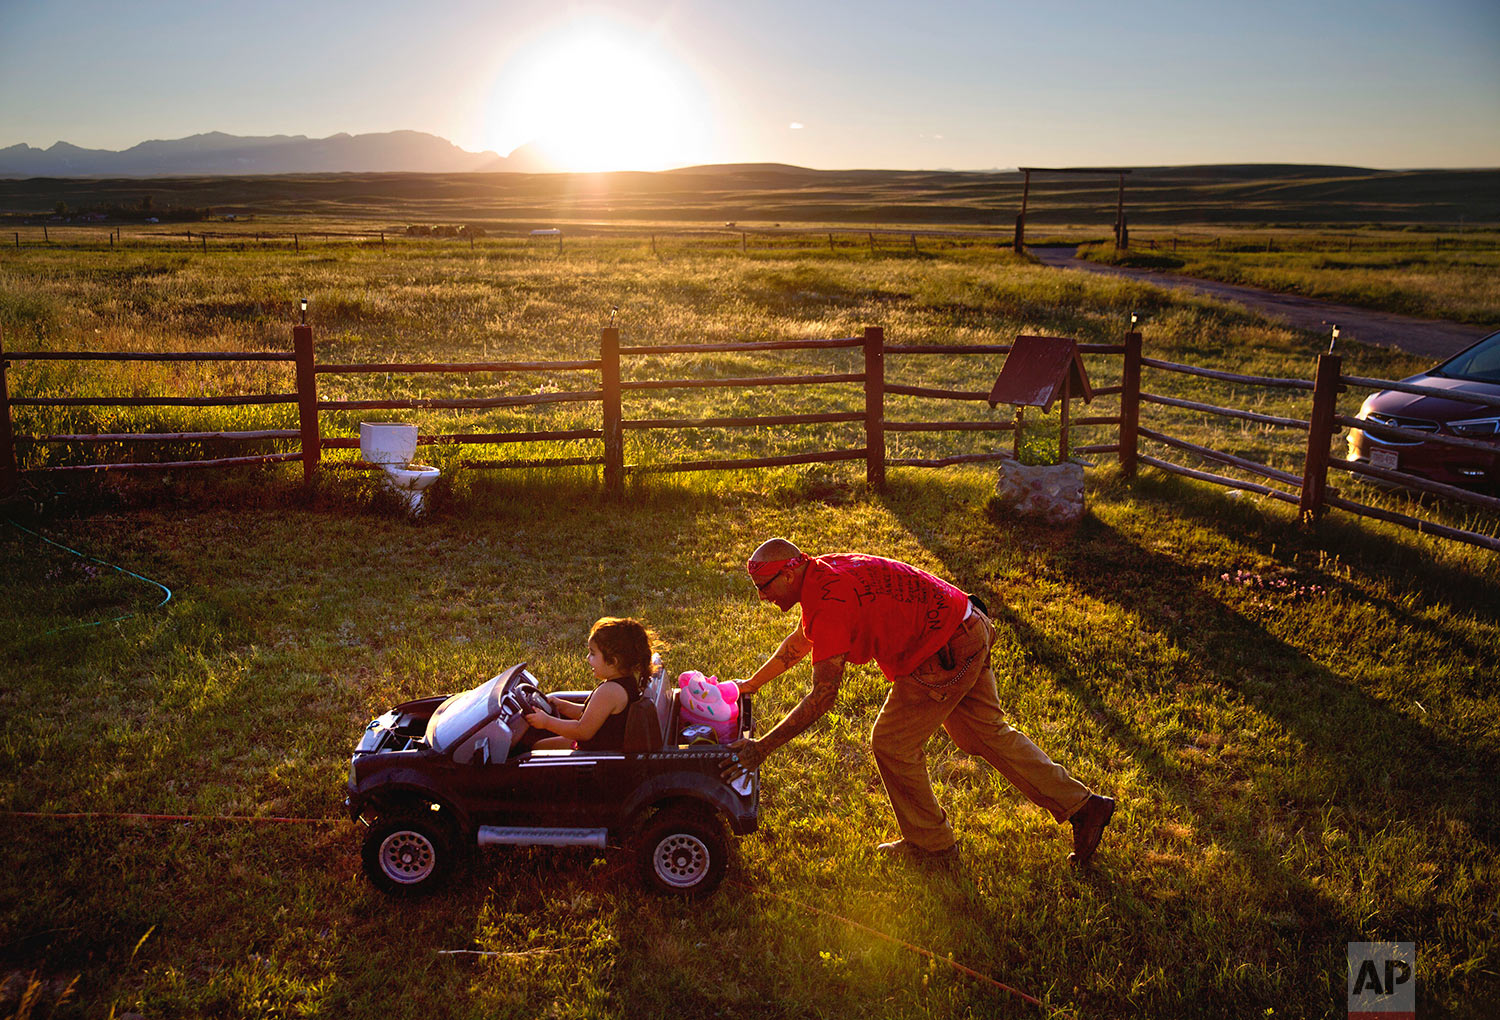 Randy Ortiz, right, pushes Ronnie Loring, 3, the cousin of Ashley HeavyRunner Loring, as they take a break from searching for her on the Blackfeet Indian Reservation in Browning, Mont., July 12, 2018. (AP Photo/David Goldman)